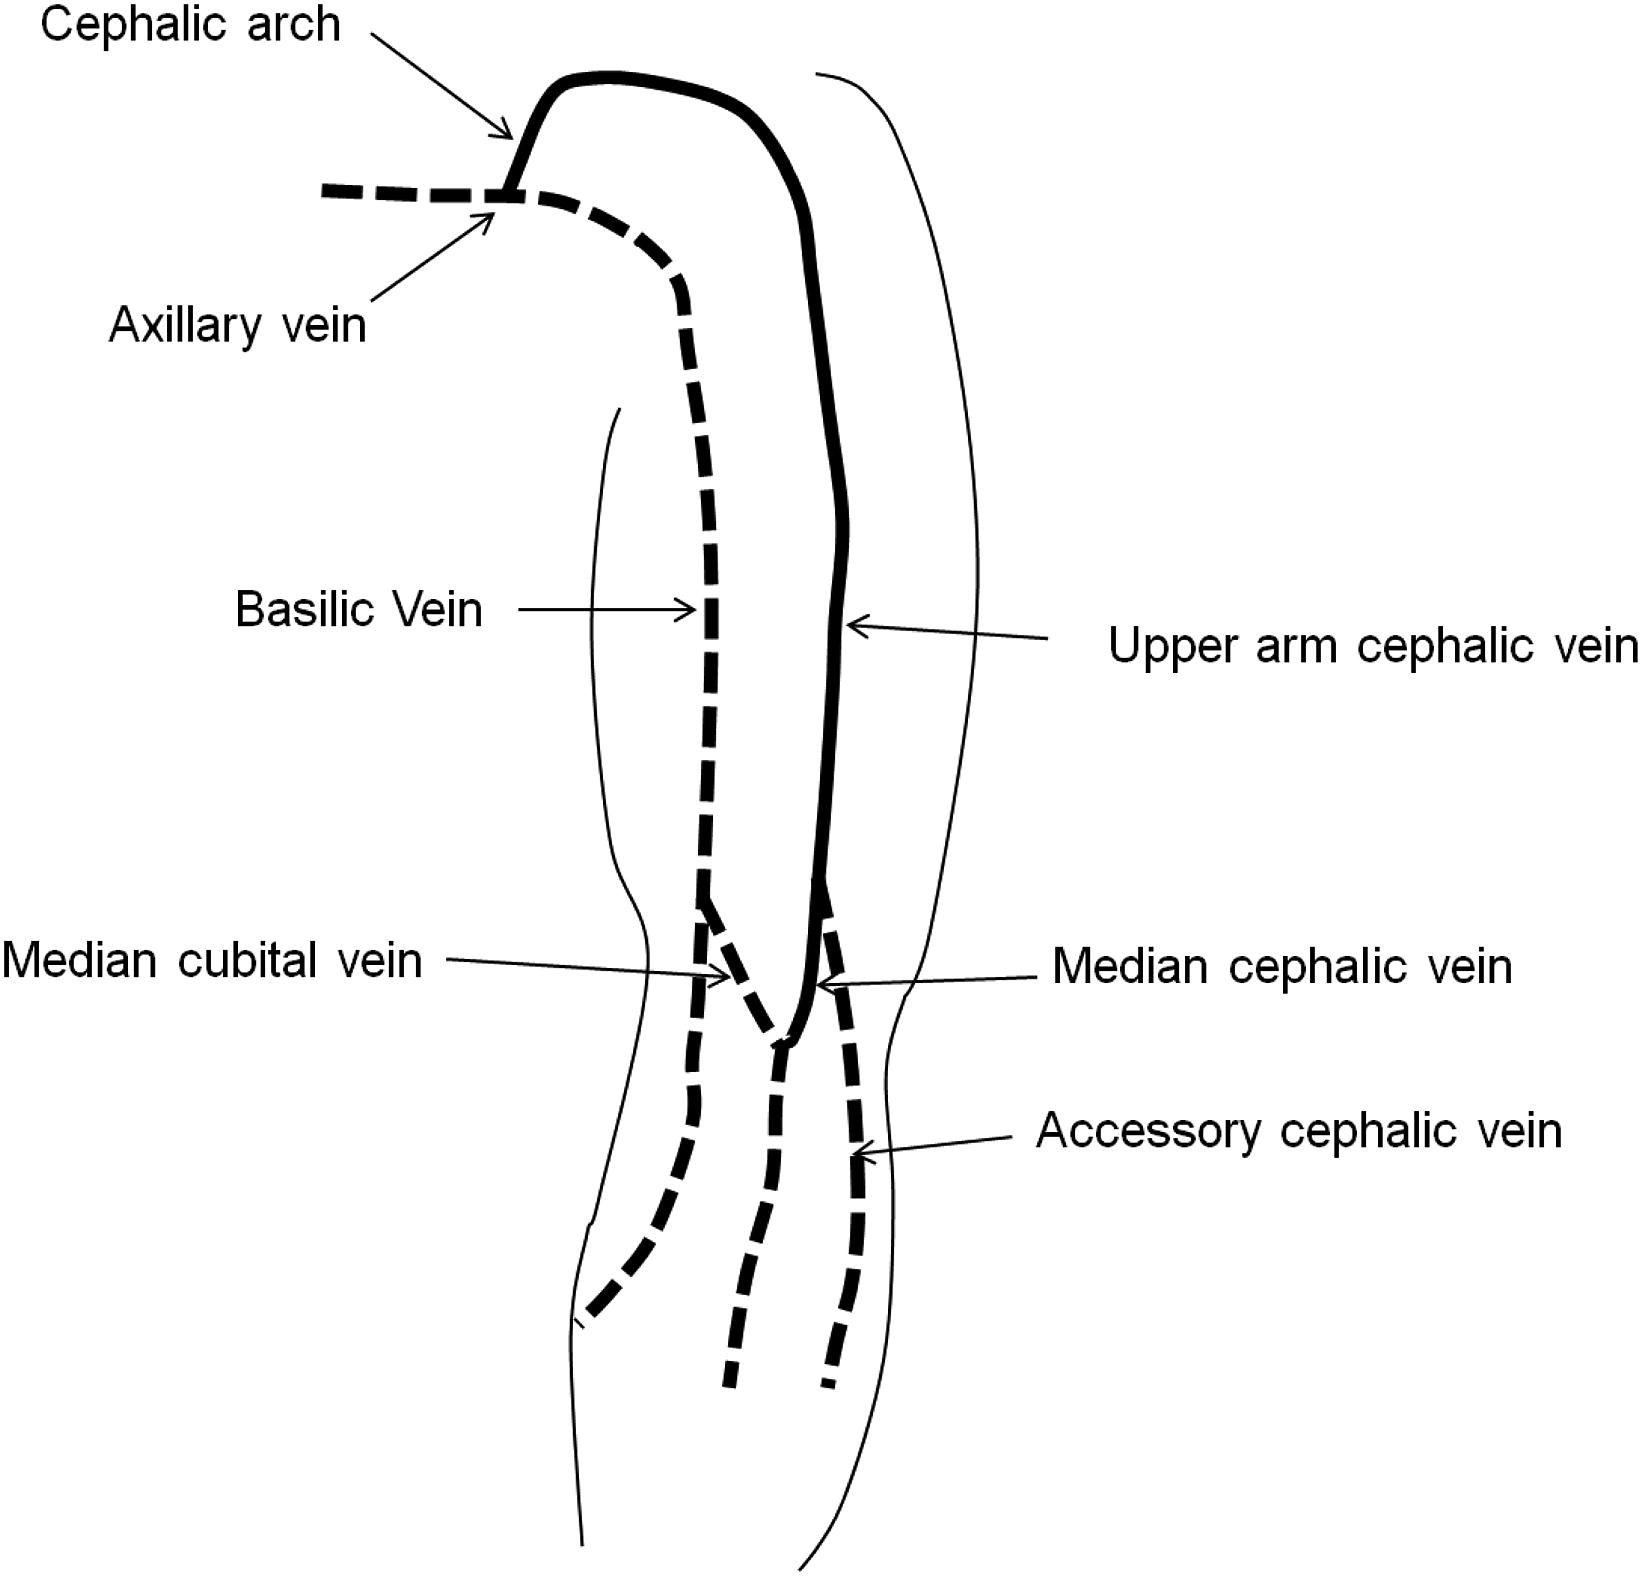 antecubital fossa diagram spst relay wiring clinical significance of upper arm cephalic vein patency